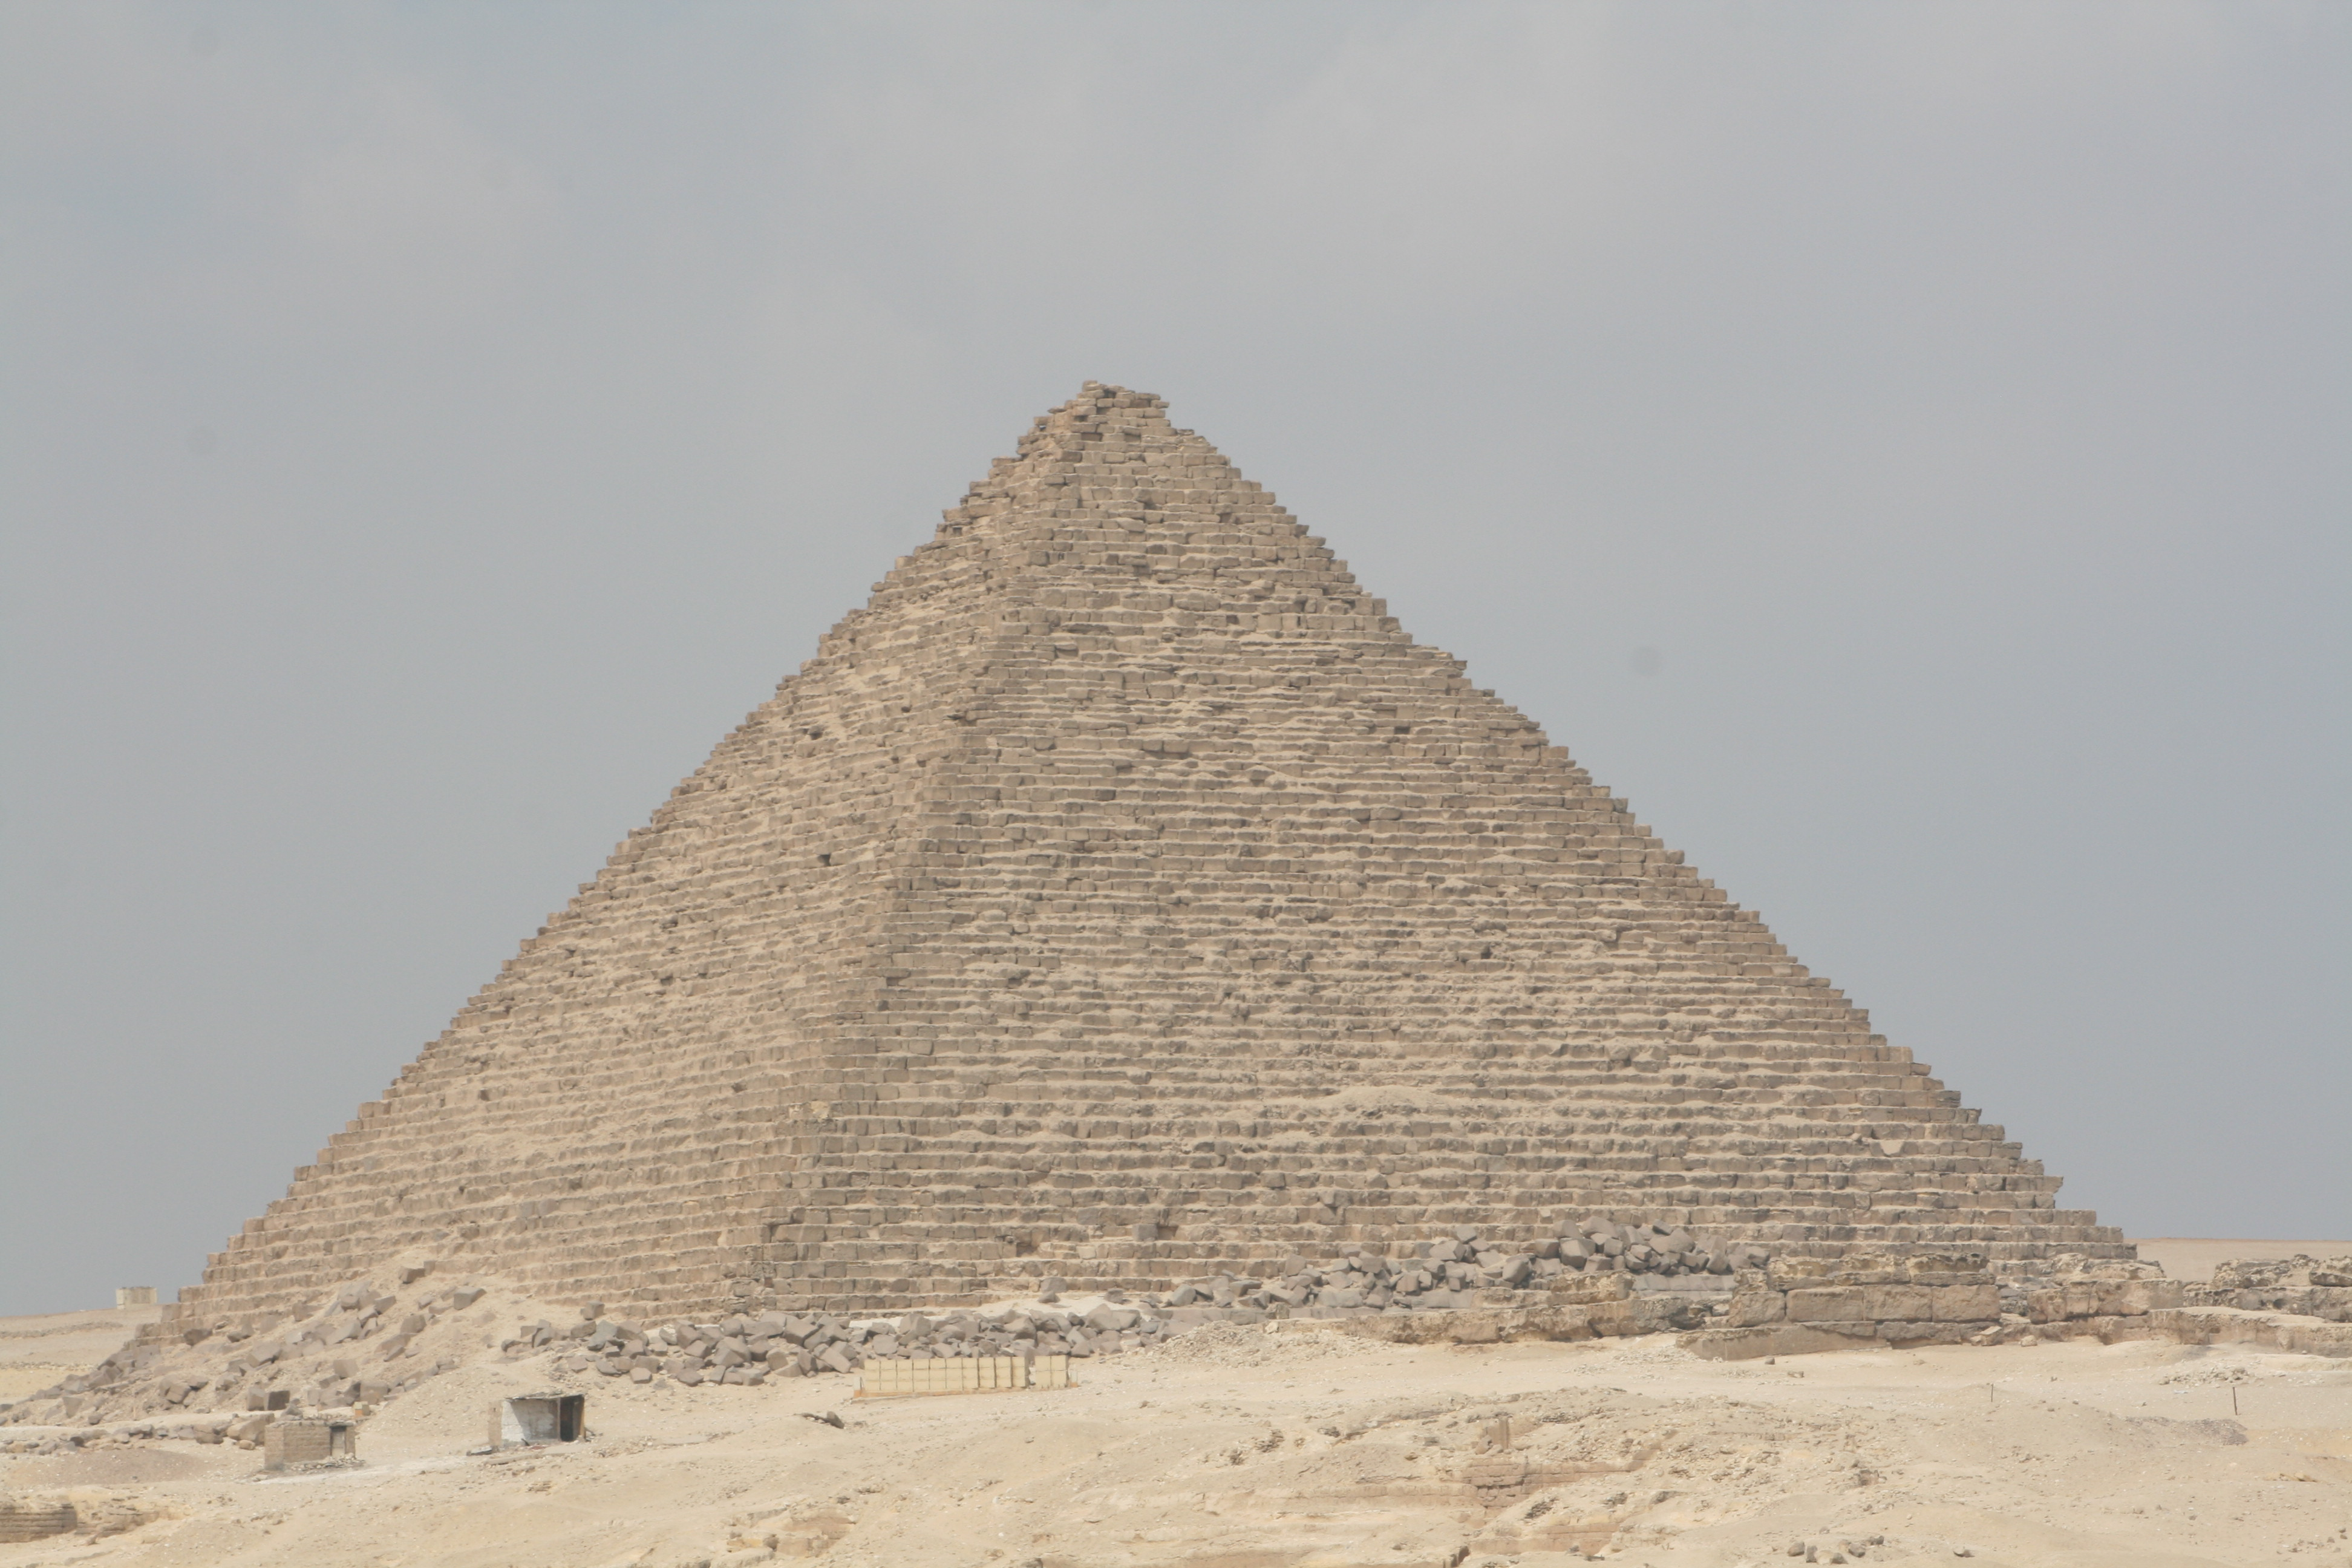 a description of the great pyramids as the oldest of seven wonders The great pyramid at giza is the only one of the seven wonders that is still standing today built by the egyptians in the third century bce, the great pyramid is one.